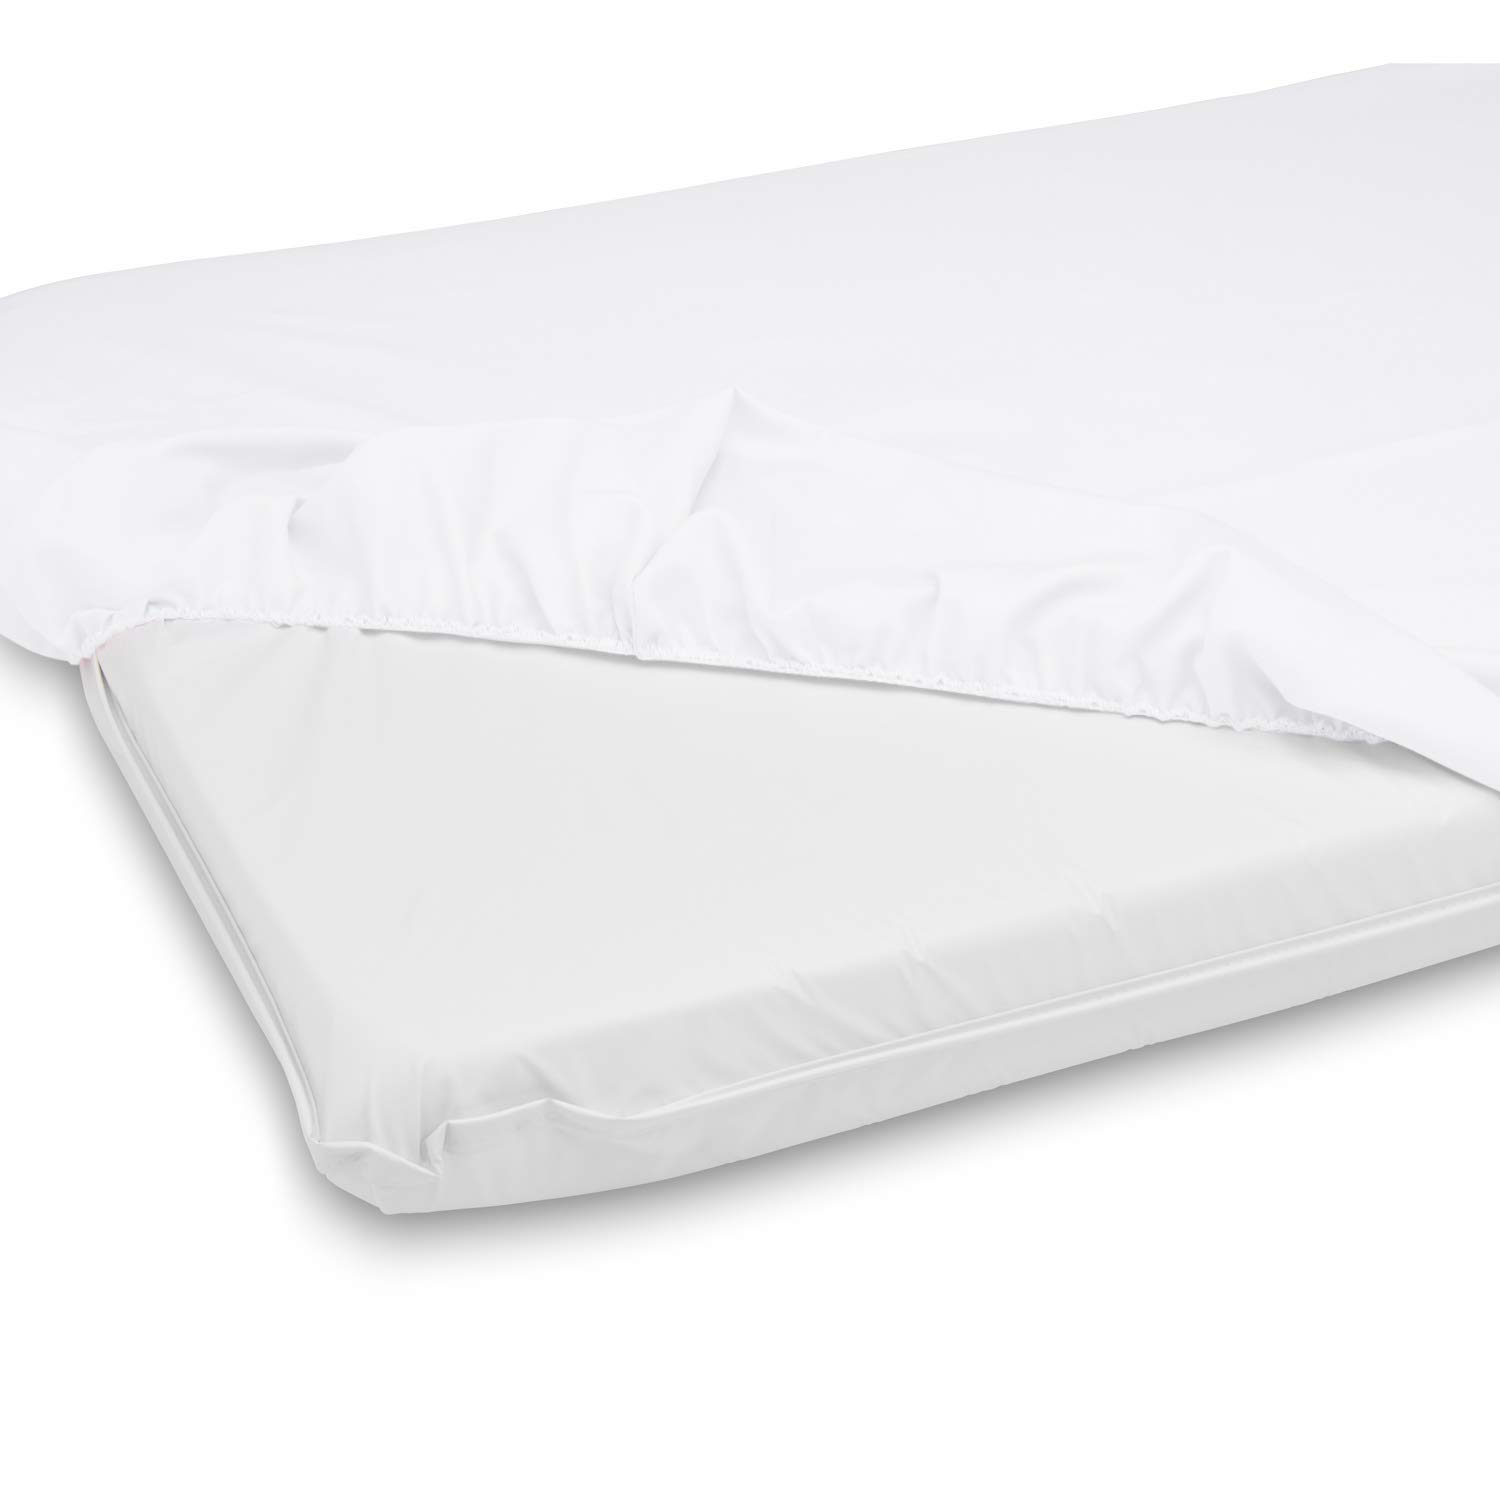 BabyDoll Bedding Cradle Mattress & Sheet Combo, White, 18'' W x 36'' L by BabyDoll Bedding